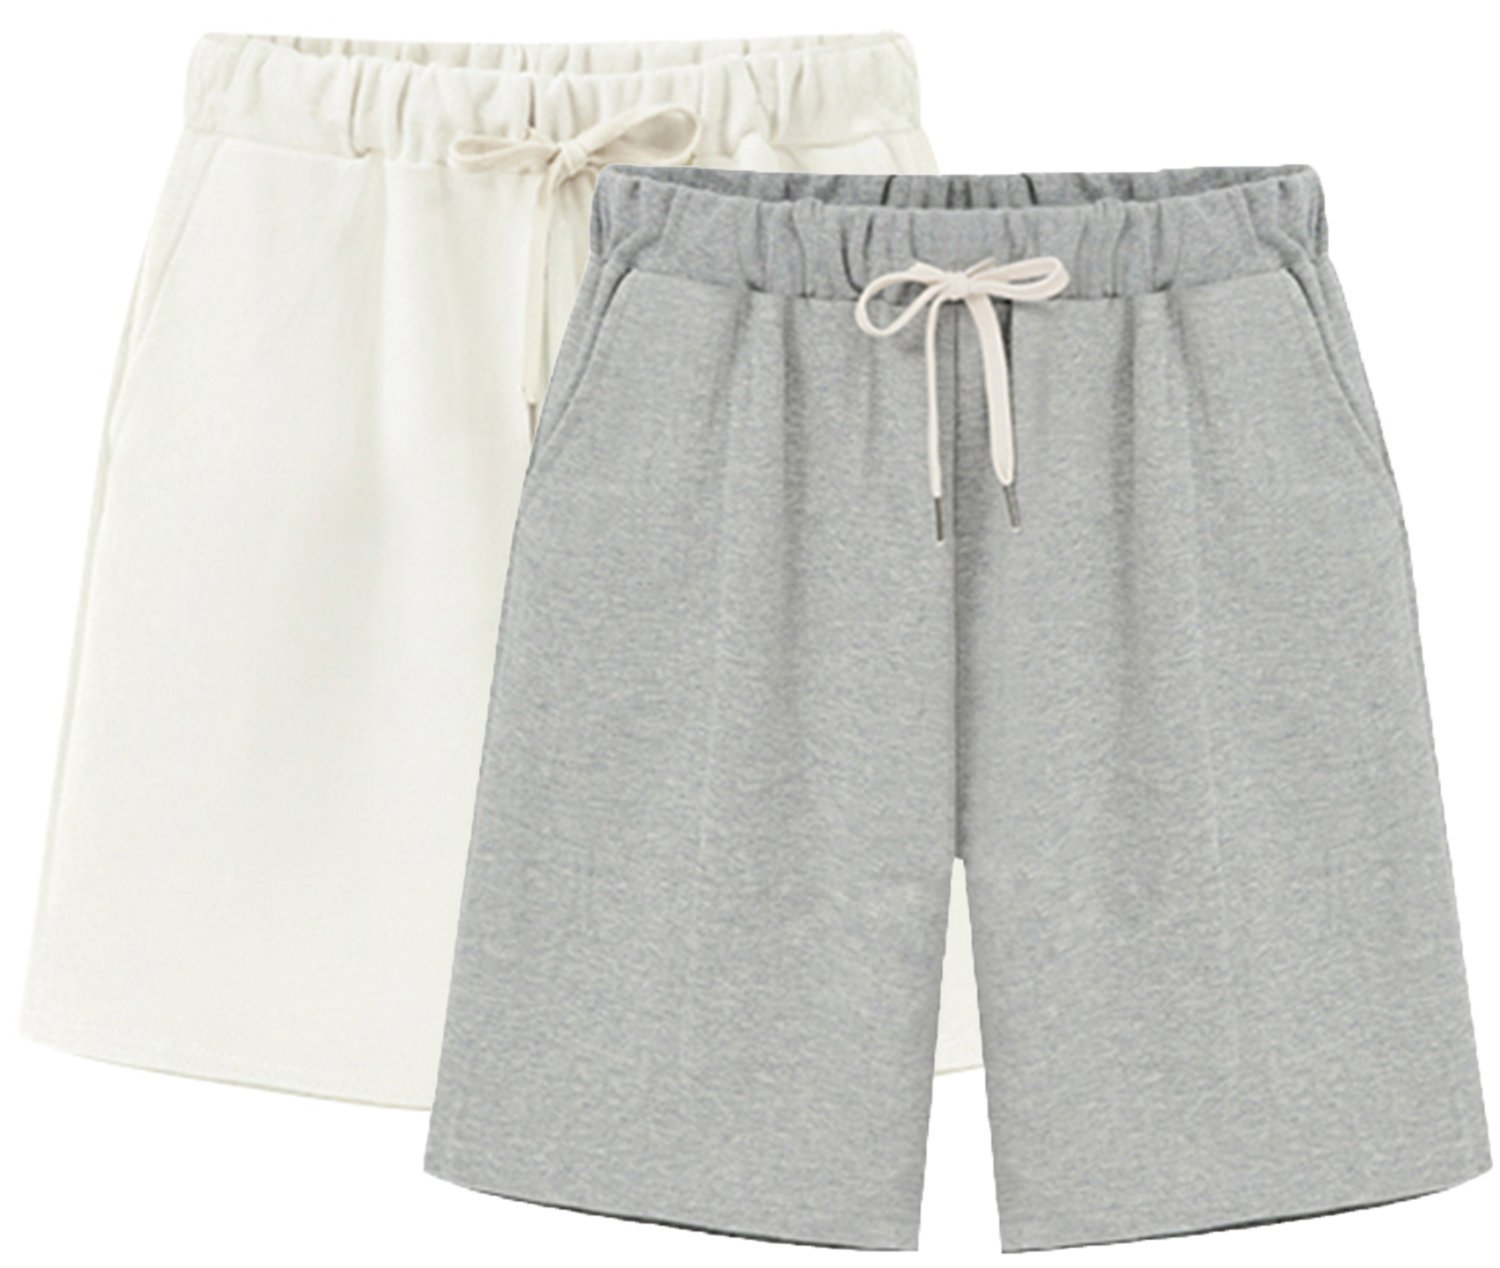 Vcansion Women's Elastic Waist Plus Size Walking Shorts 2 Pack(White+Grey) US 8-10/Asian 4XL